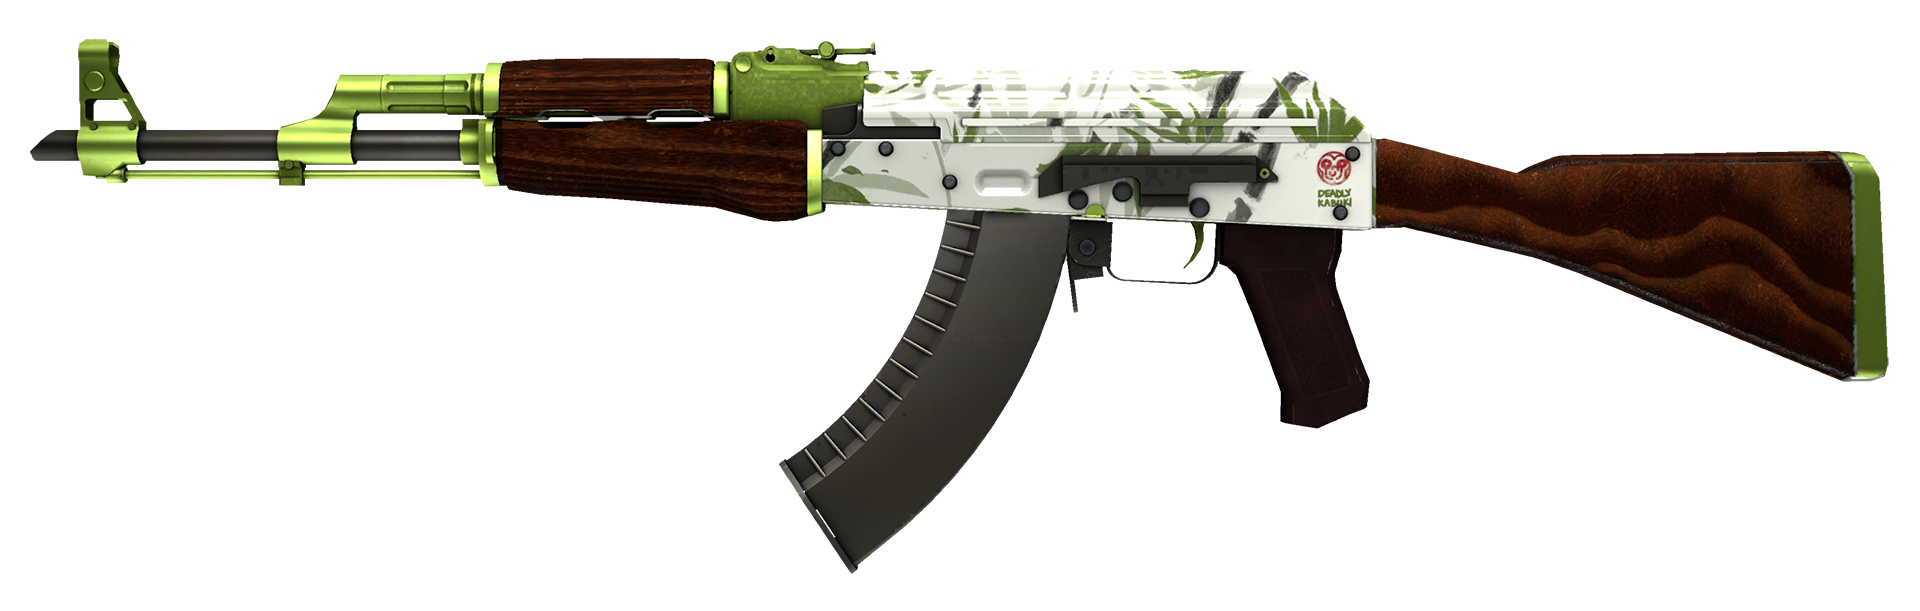 AK-47 Hydroponic Large Rendering